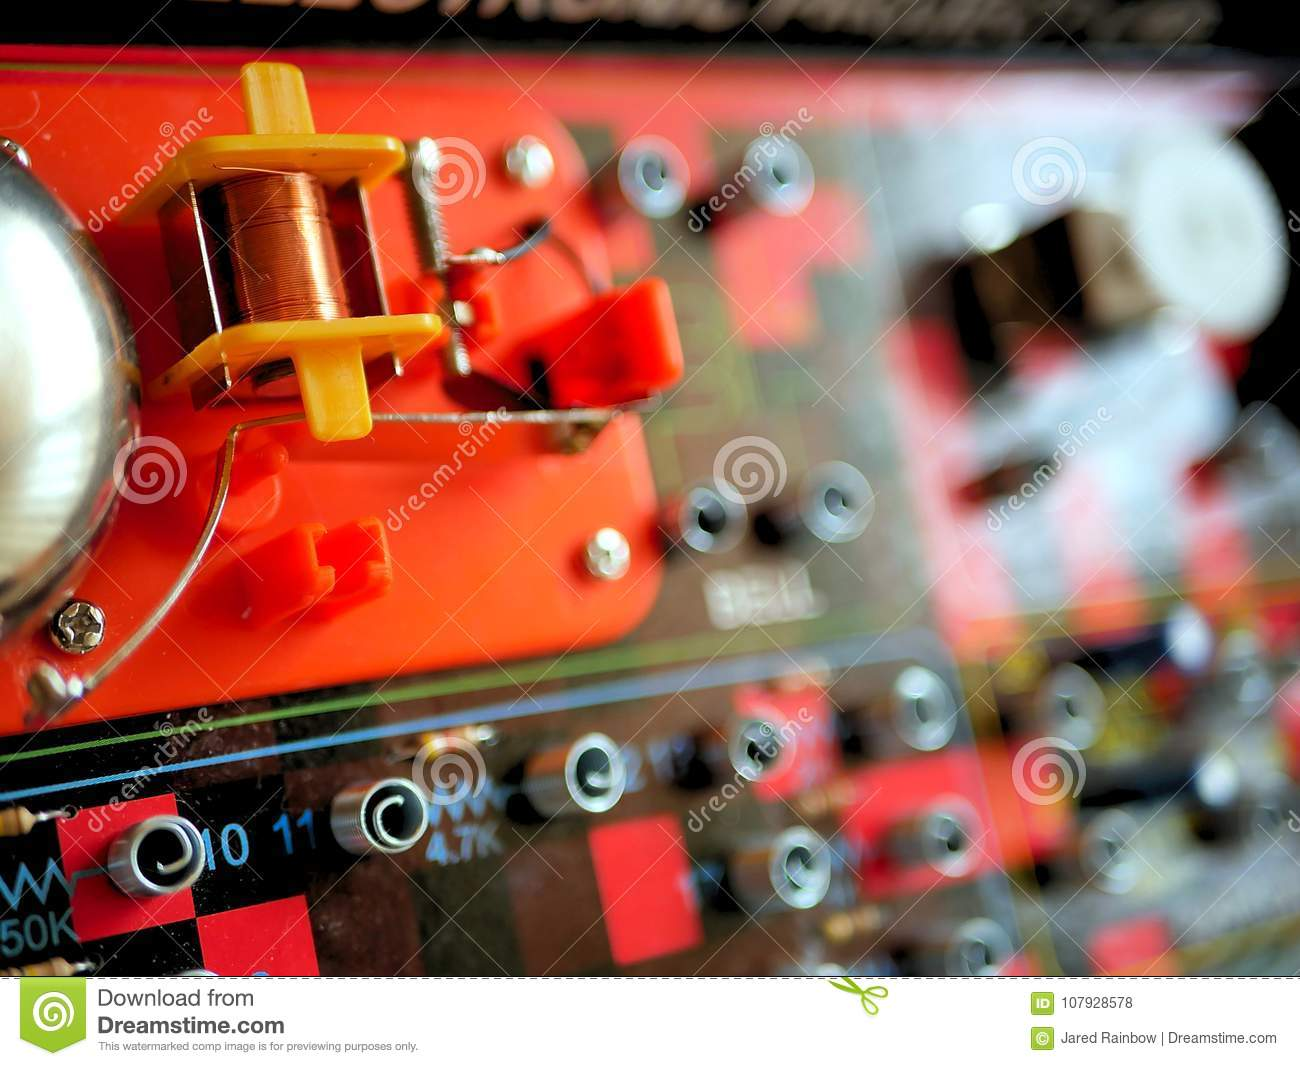 Science And Technology Electrical Circuit Board Education Stock Learn About